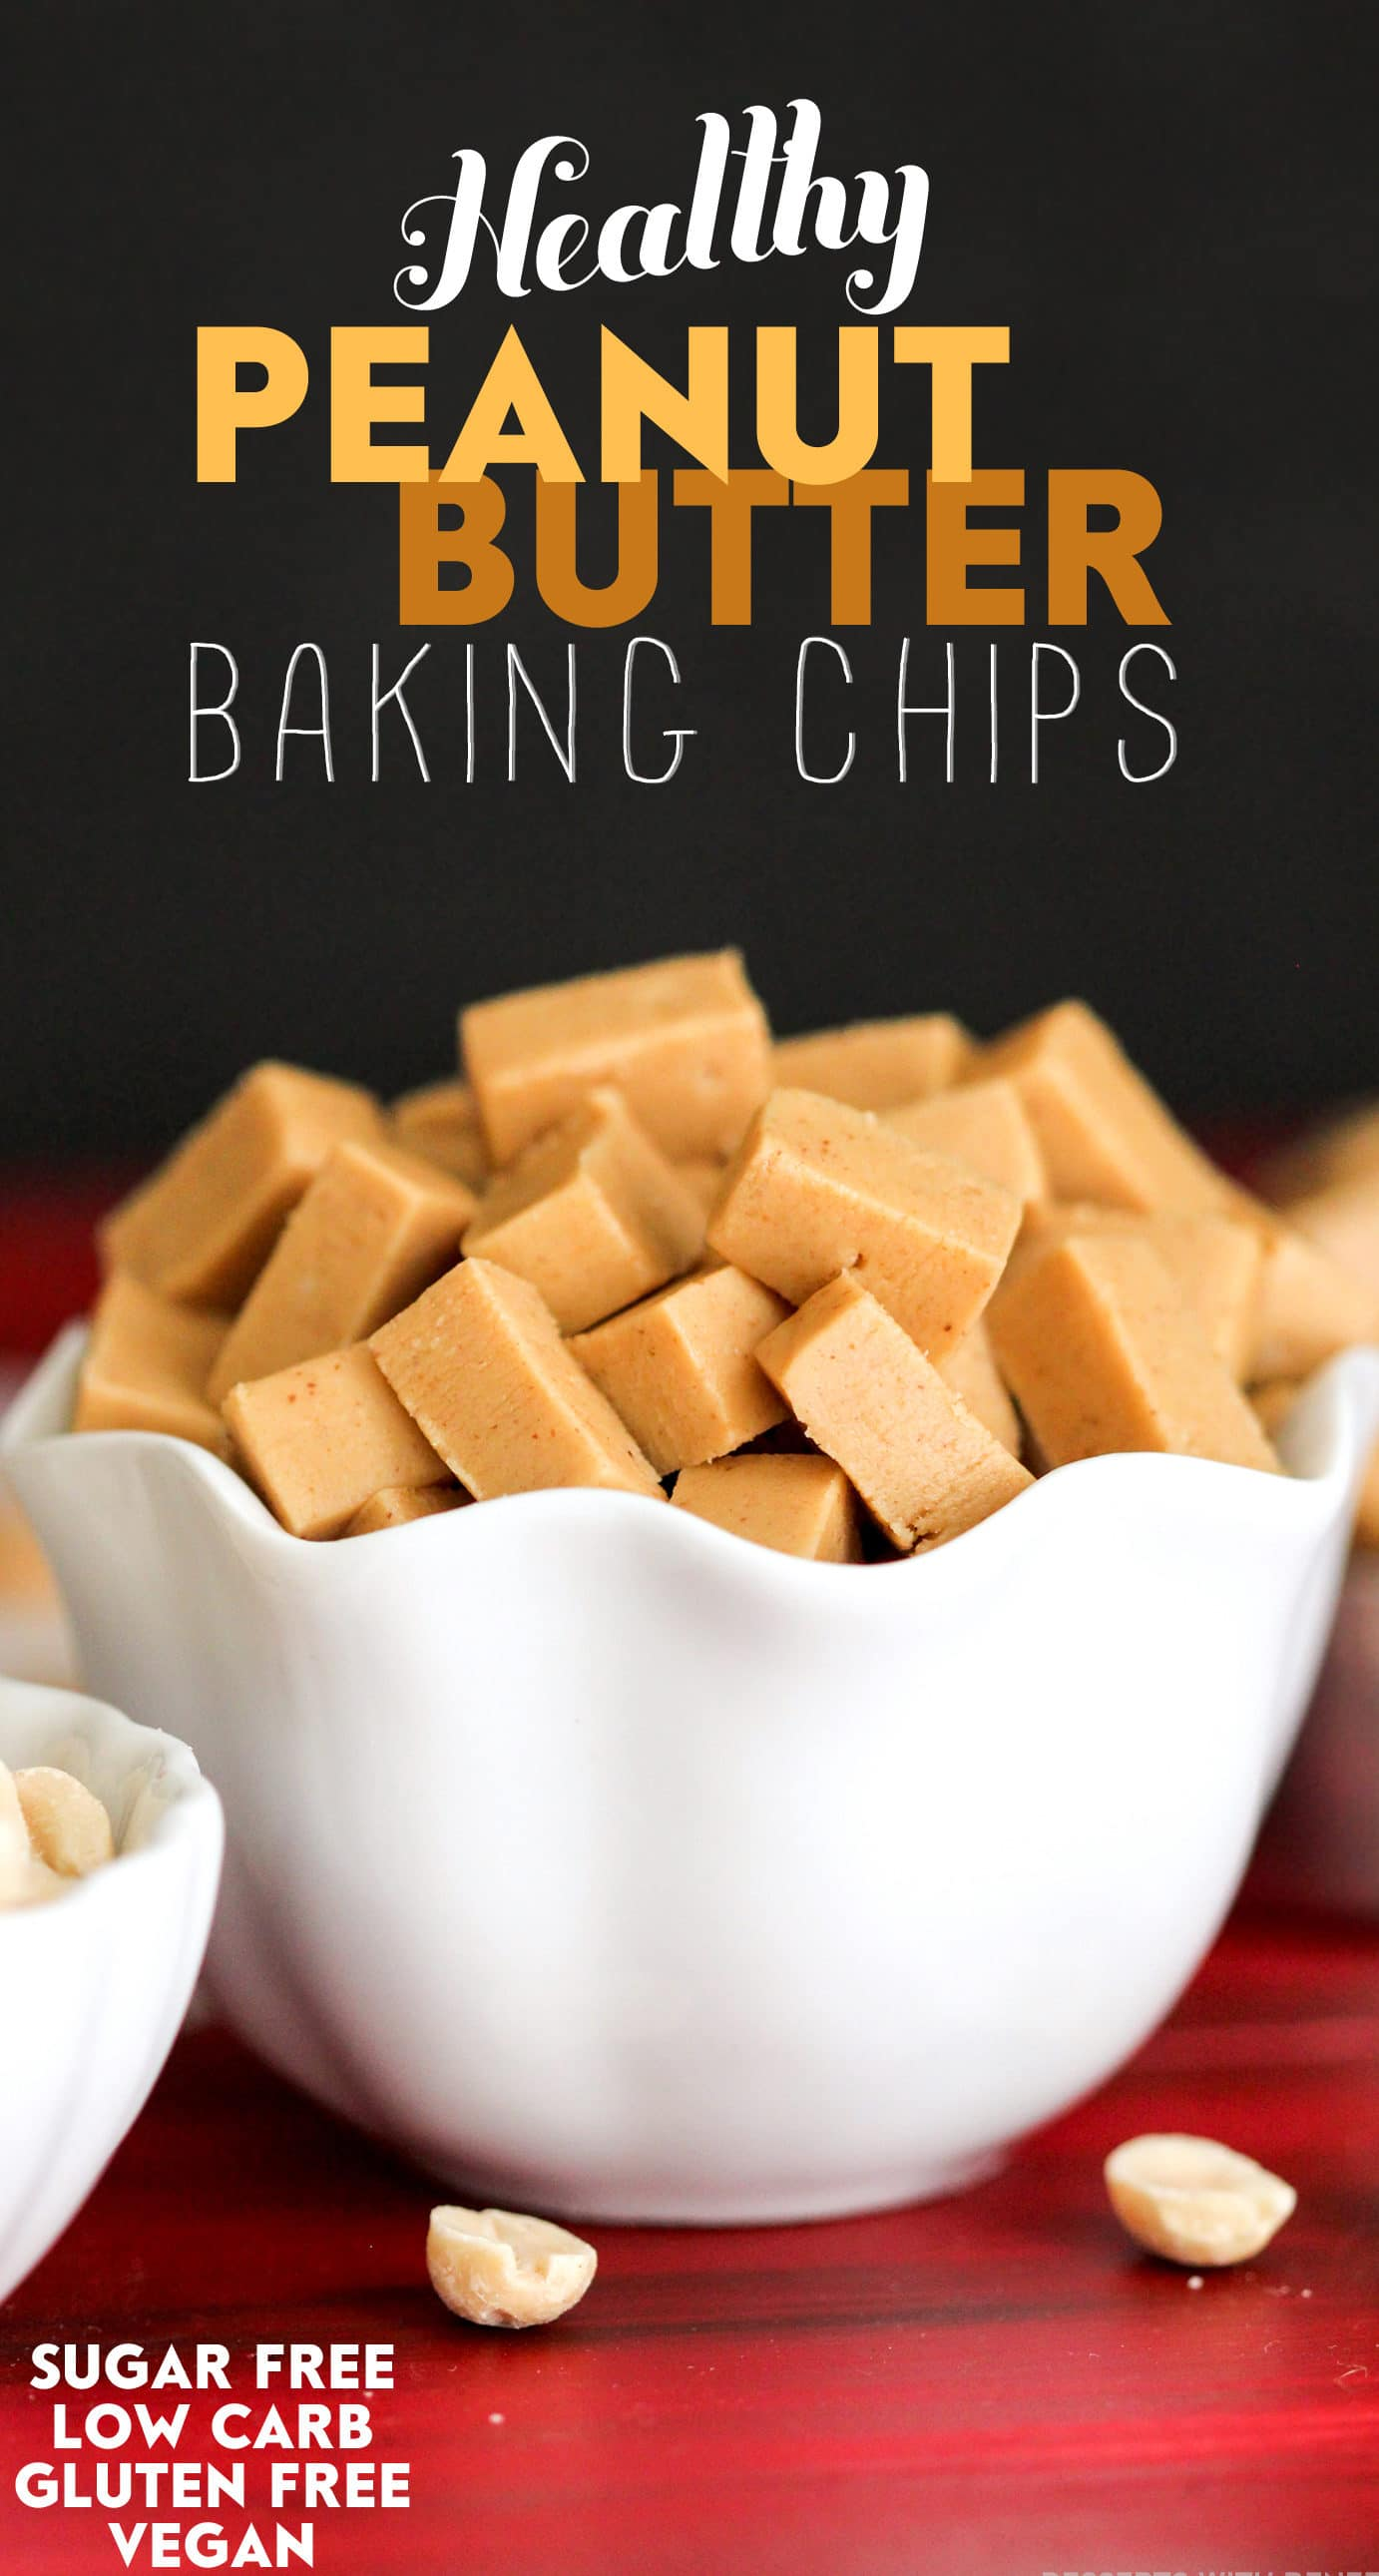 Healthy Homemade Peanut Butter Baking Chips (no bake, sugar free, low carb, gluten free, dairy free, vegan, keto) - Healthy Dessert Recipes at Desserts with Benefits